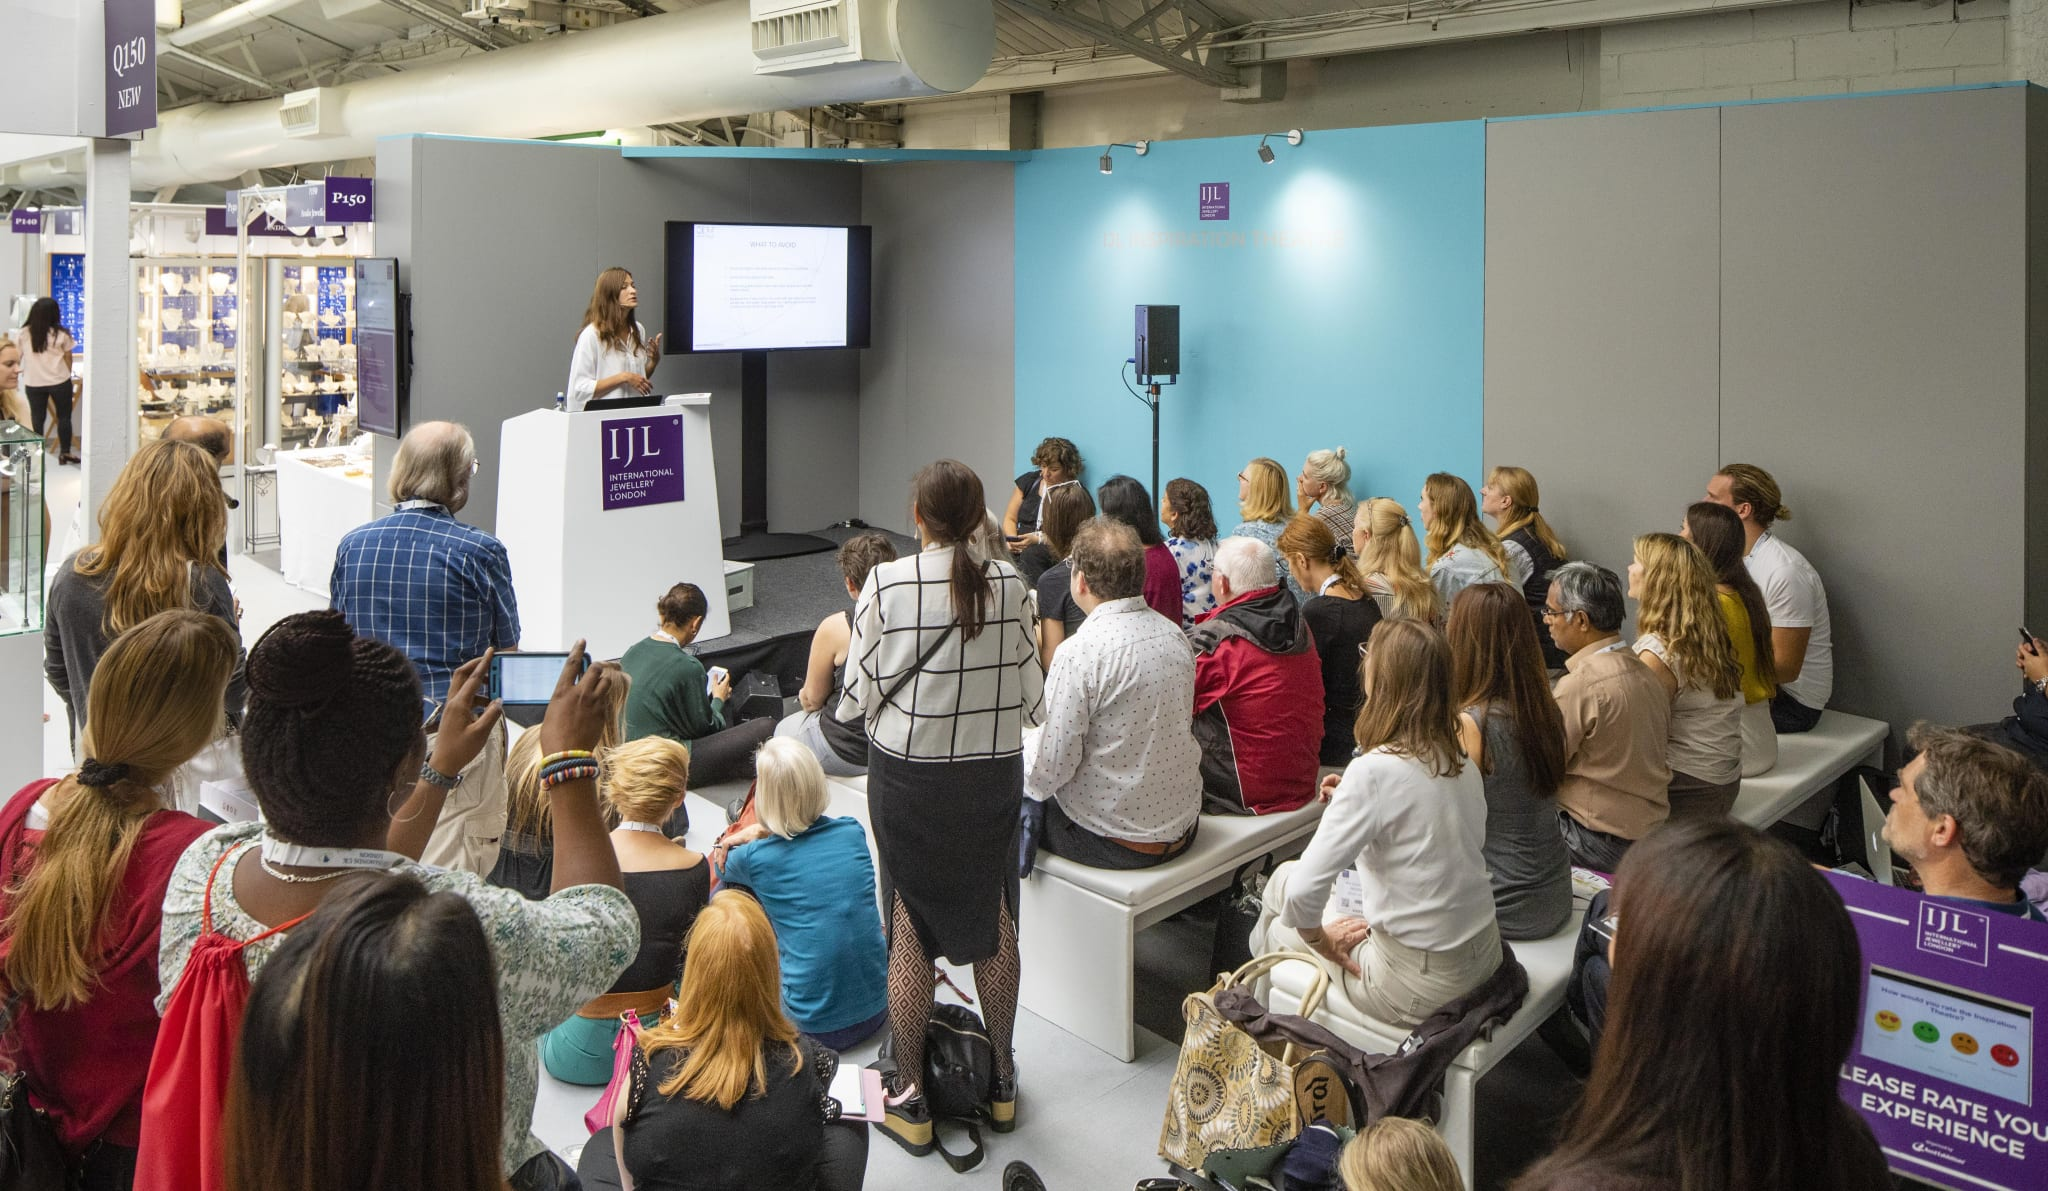 Ijl Calls On Industry Professionals To Submit Seminar Ideas